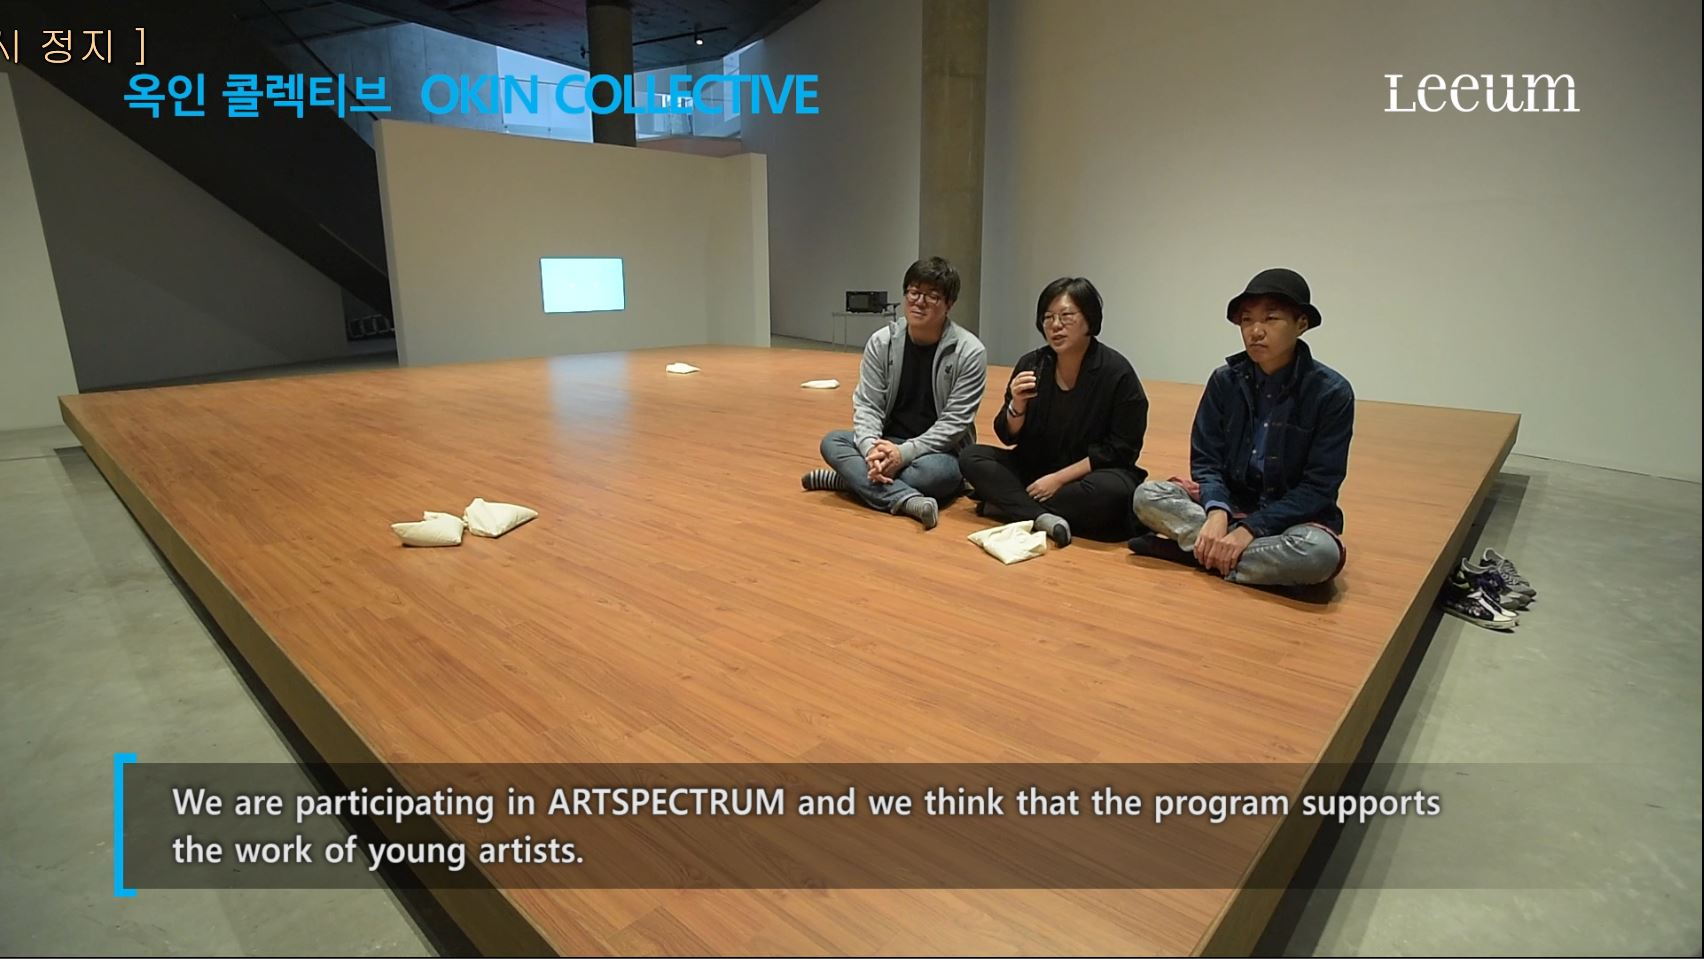 ARTSPECTRUM2016 - Okin Collective